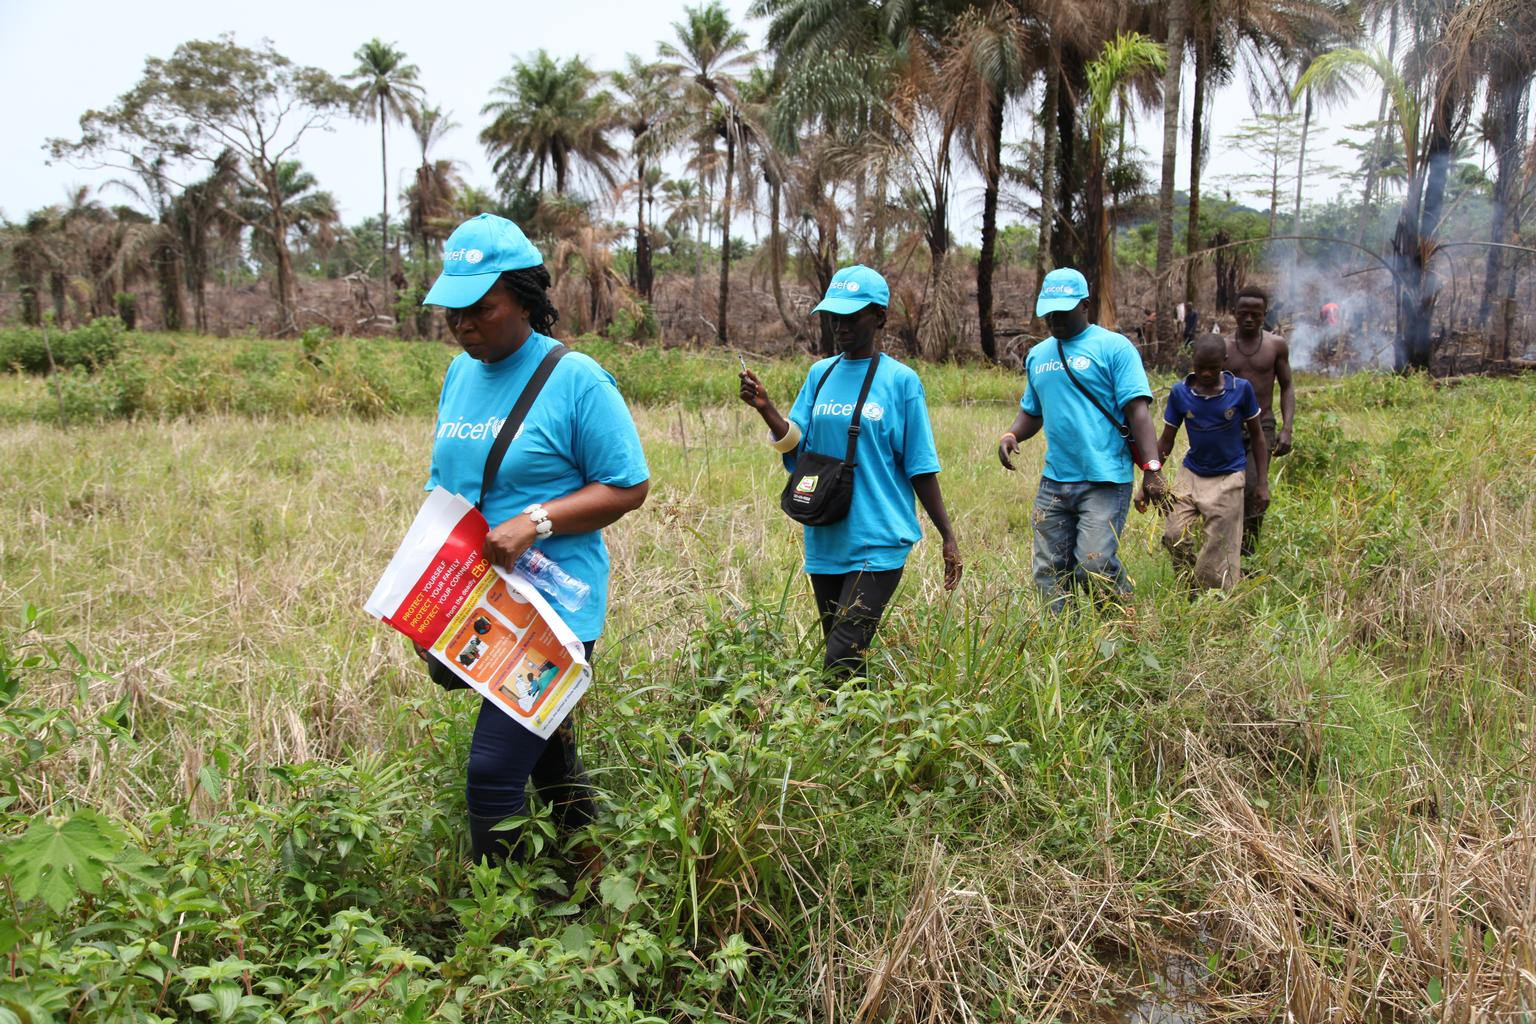 In Liberia, UNICEF workers travel by foot to reach plantation workers in a remote area, where they will share information on the symptoms of Ebola virus disease (EVD) and best practices to help prevent its spread,